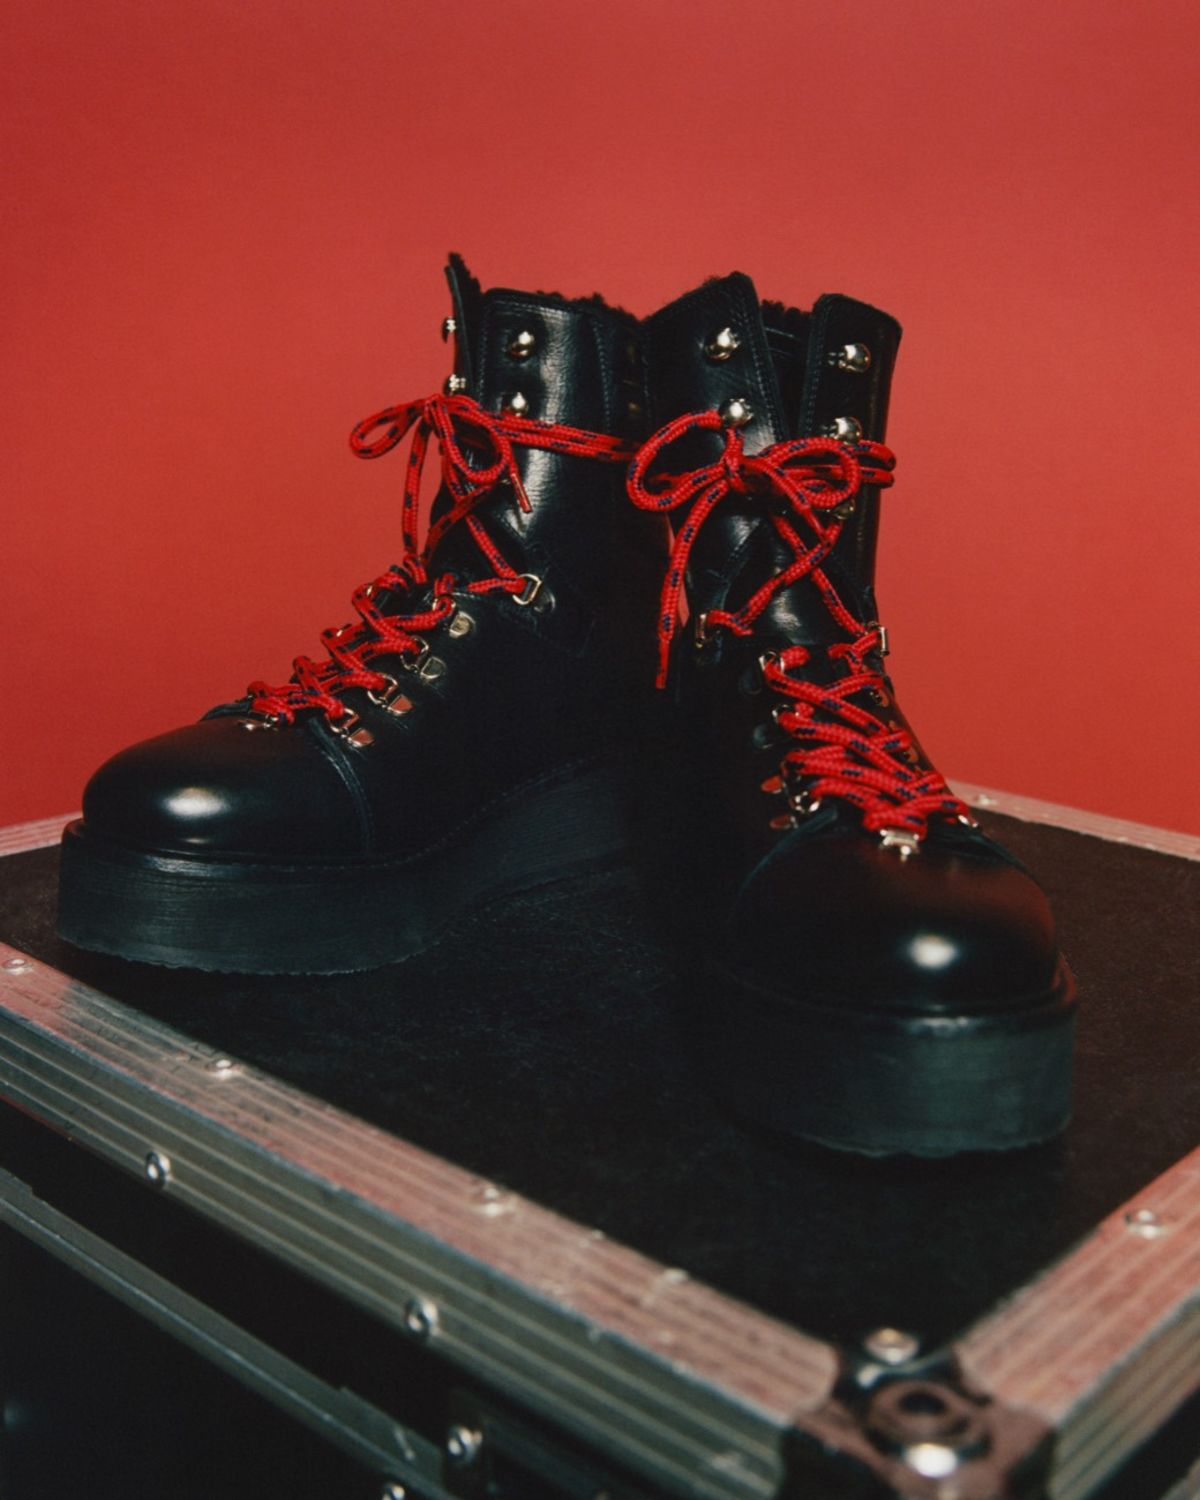 Close up of black leather military style shoes with red laces in front of a red background.